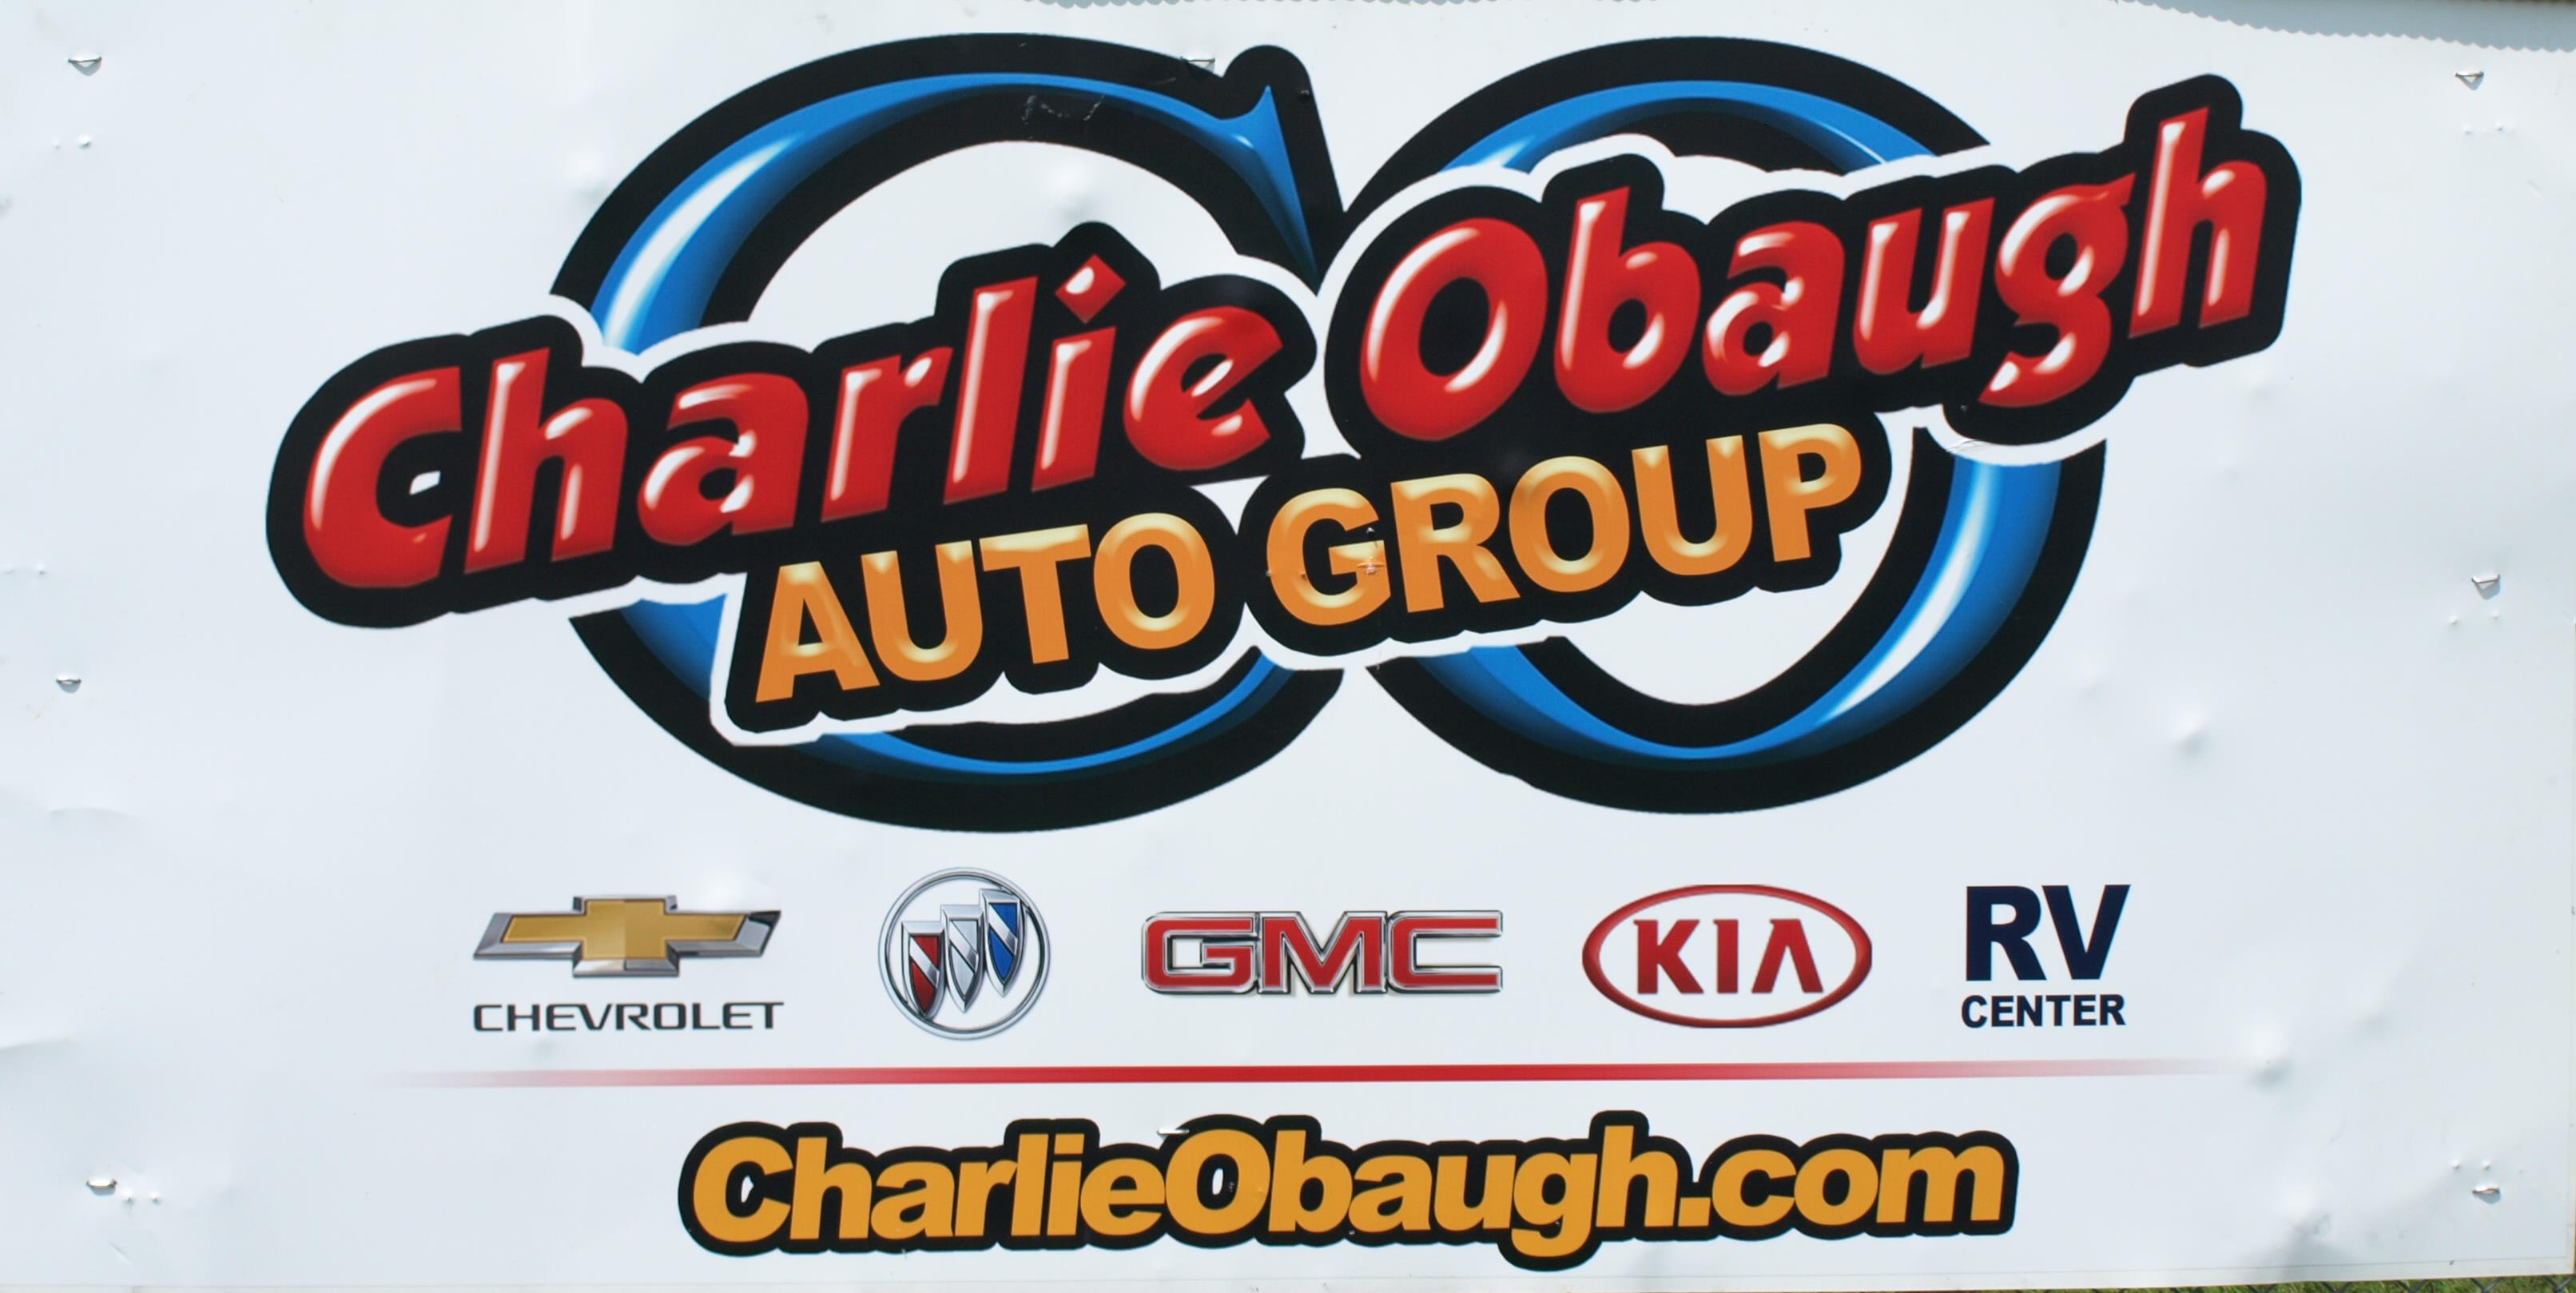 Charlie Obaugh Auto Group